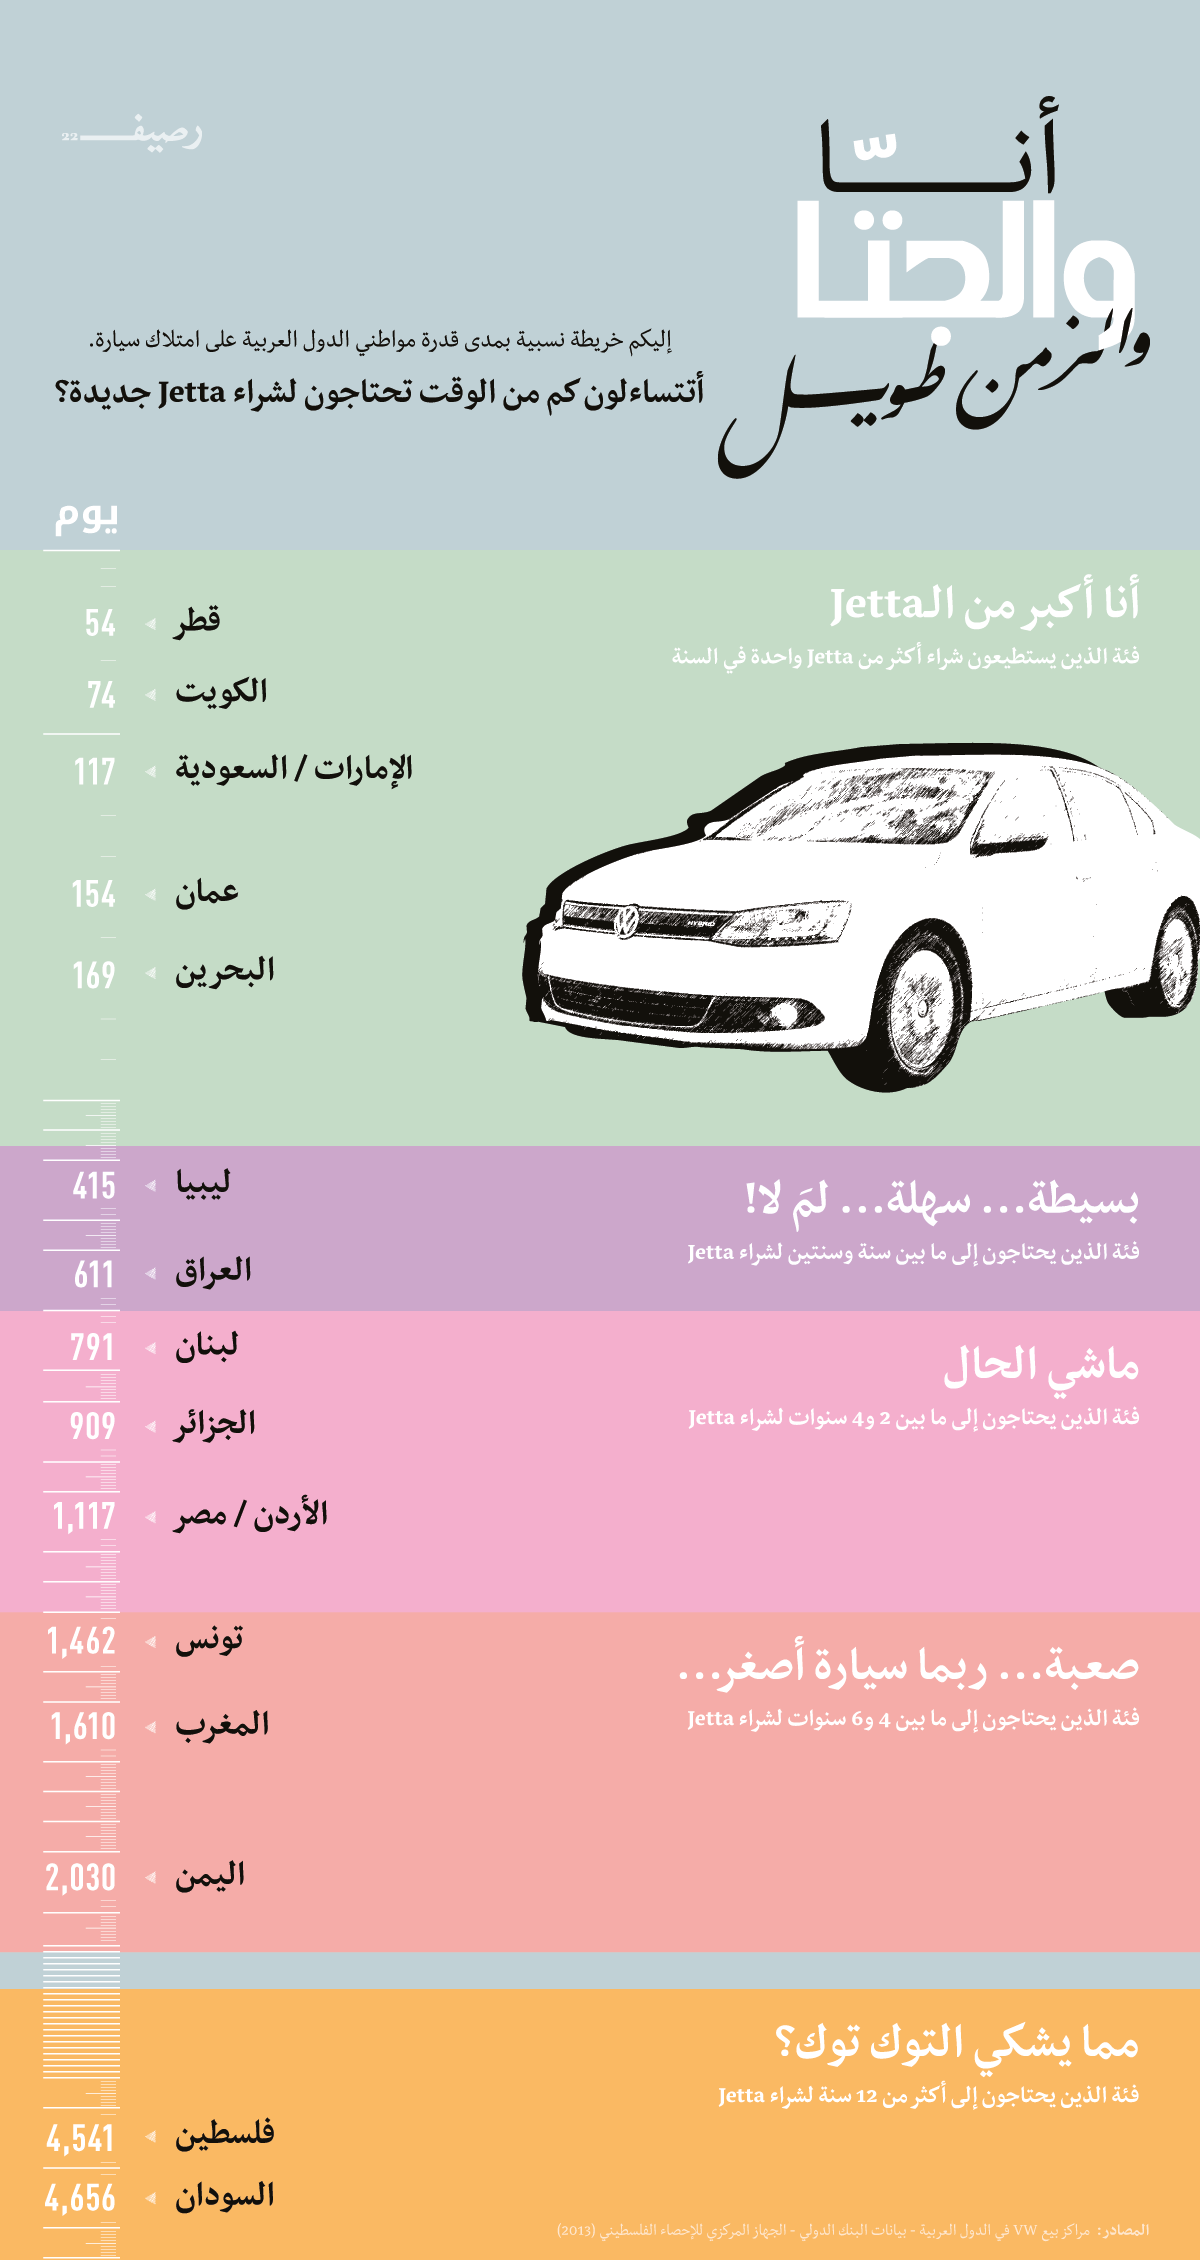 R22_Jetta_Index_infograph_20150314